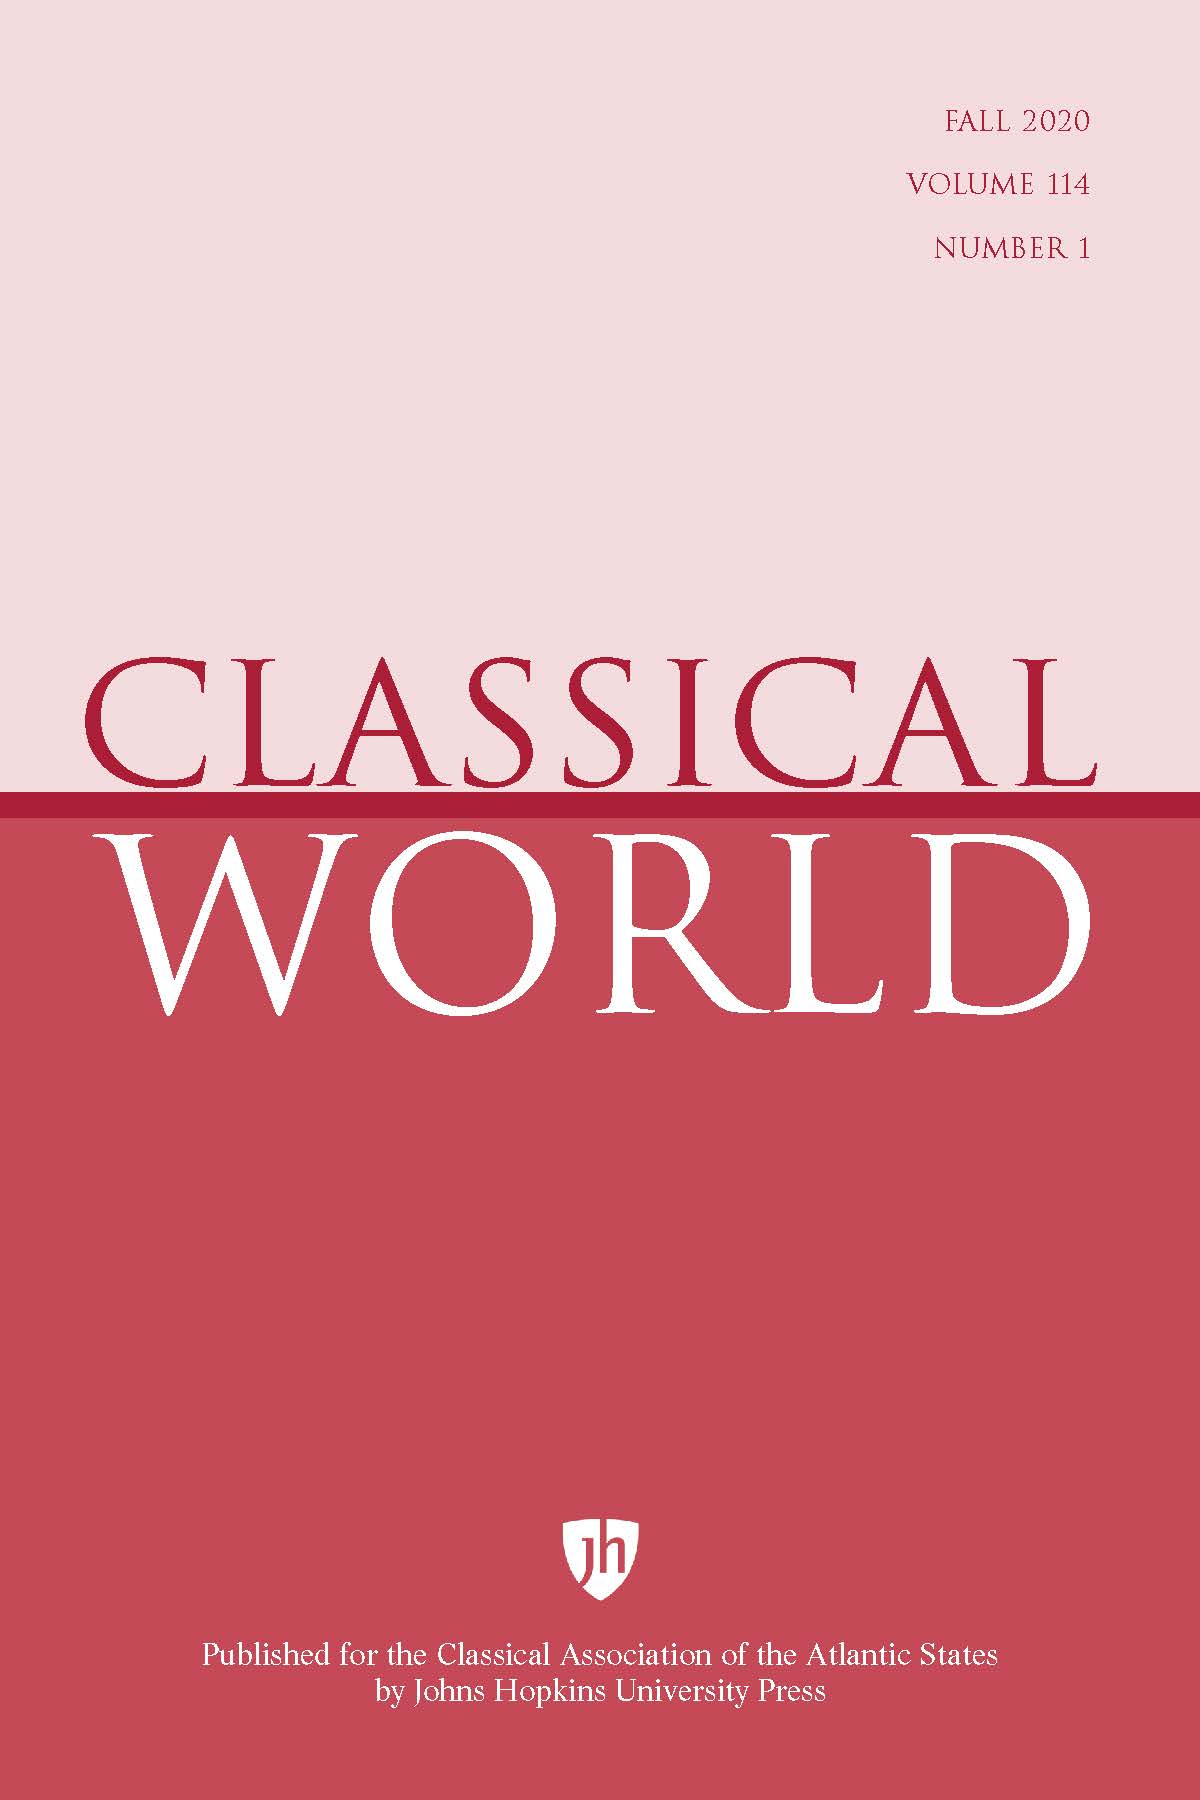 Classical World: Number 1, Fall 2020